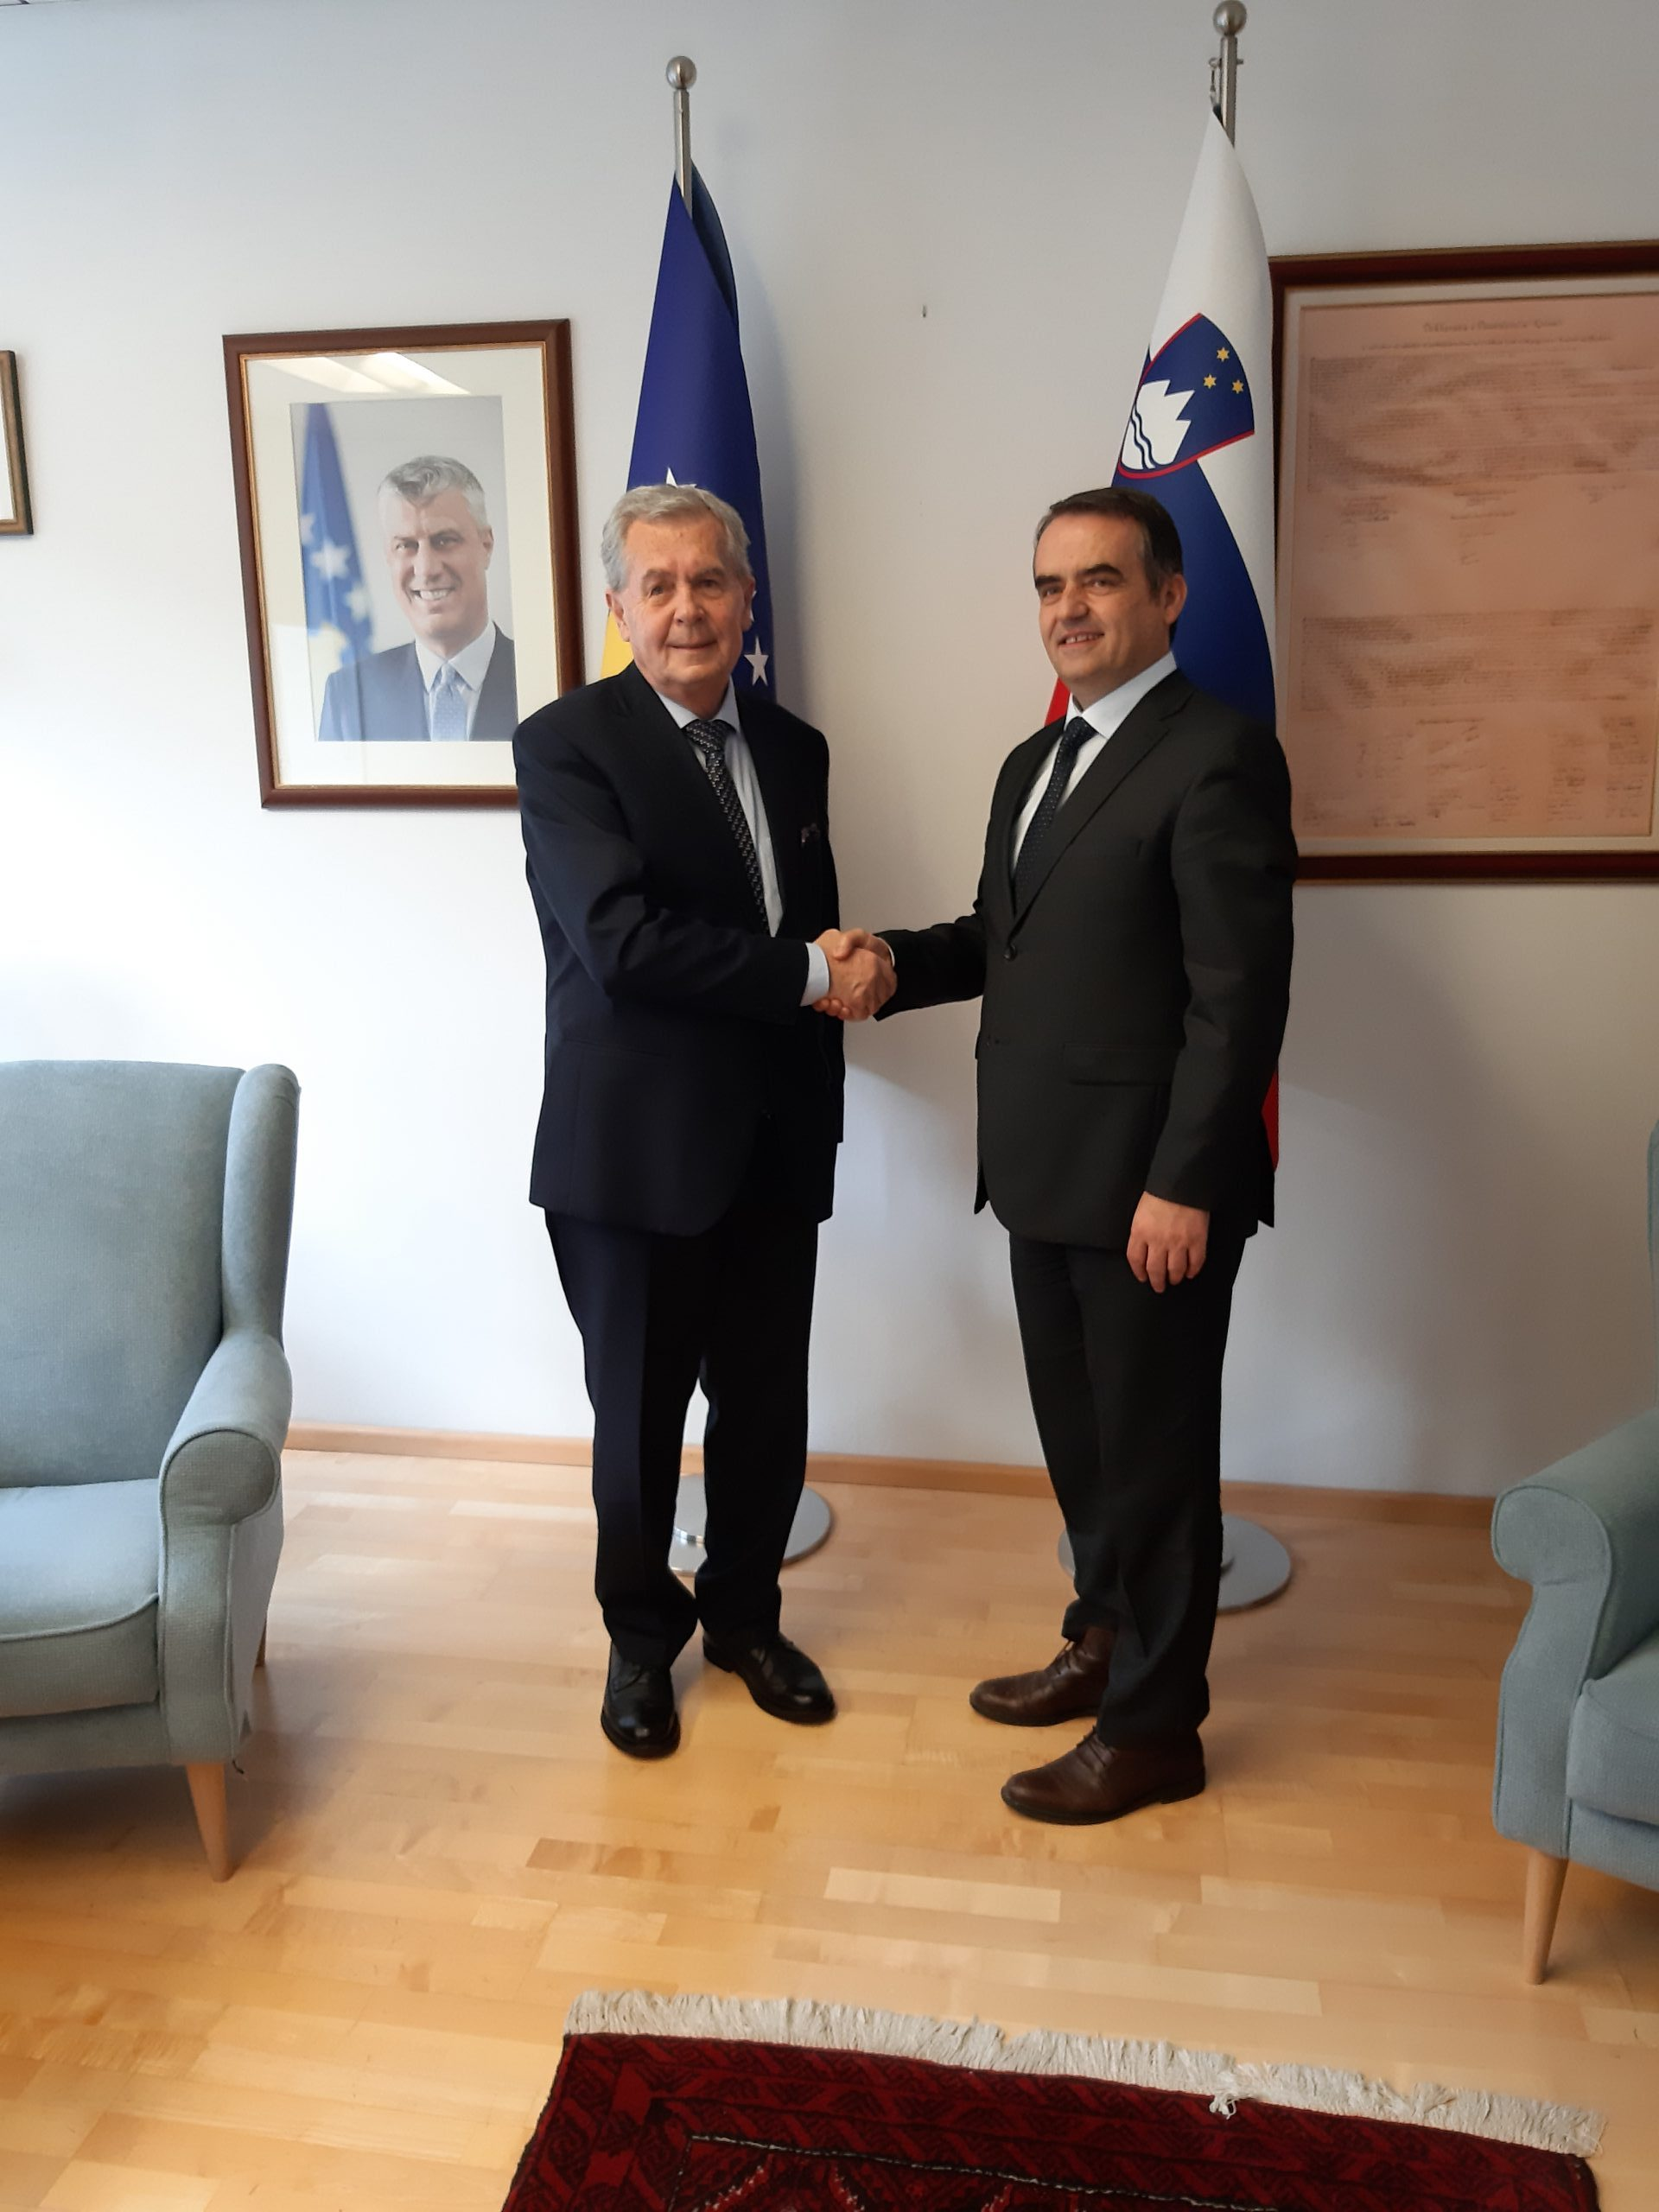 The Meeting Of UMIB's Rector And The Ambassador Of Kosovo In Slovenia